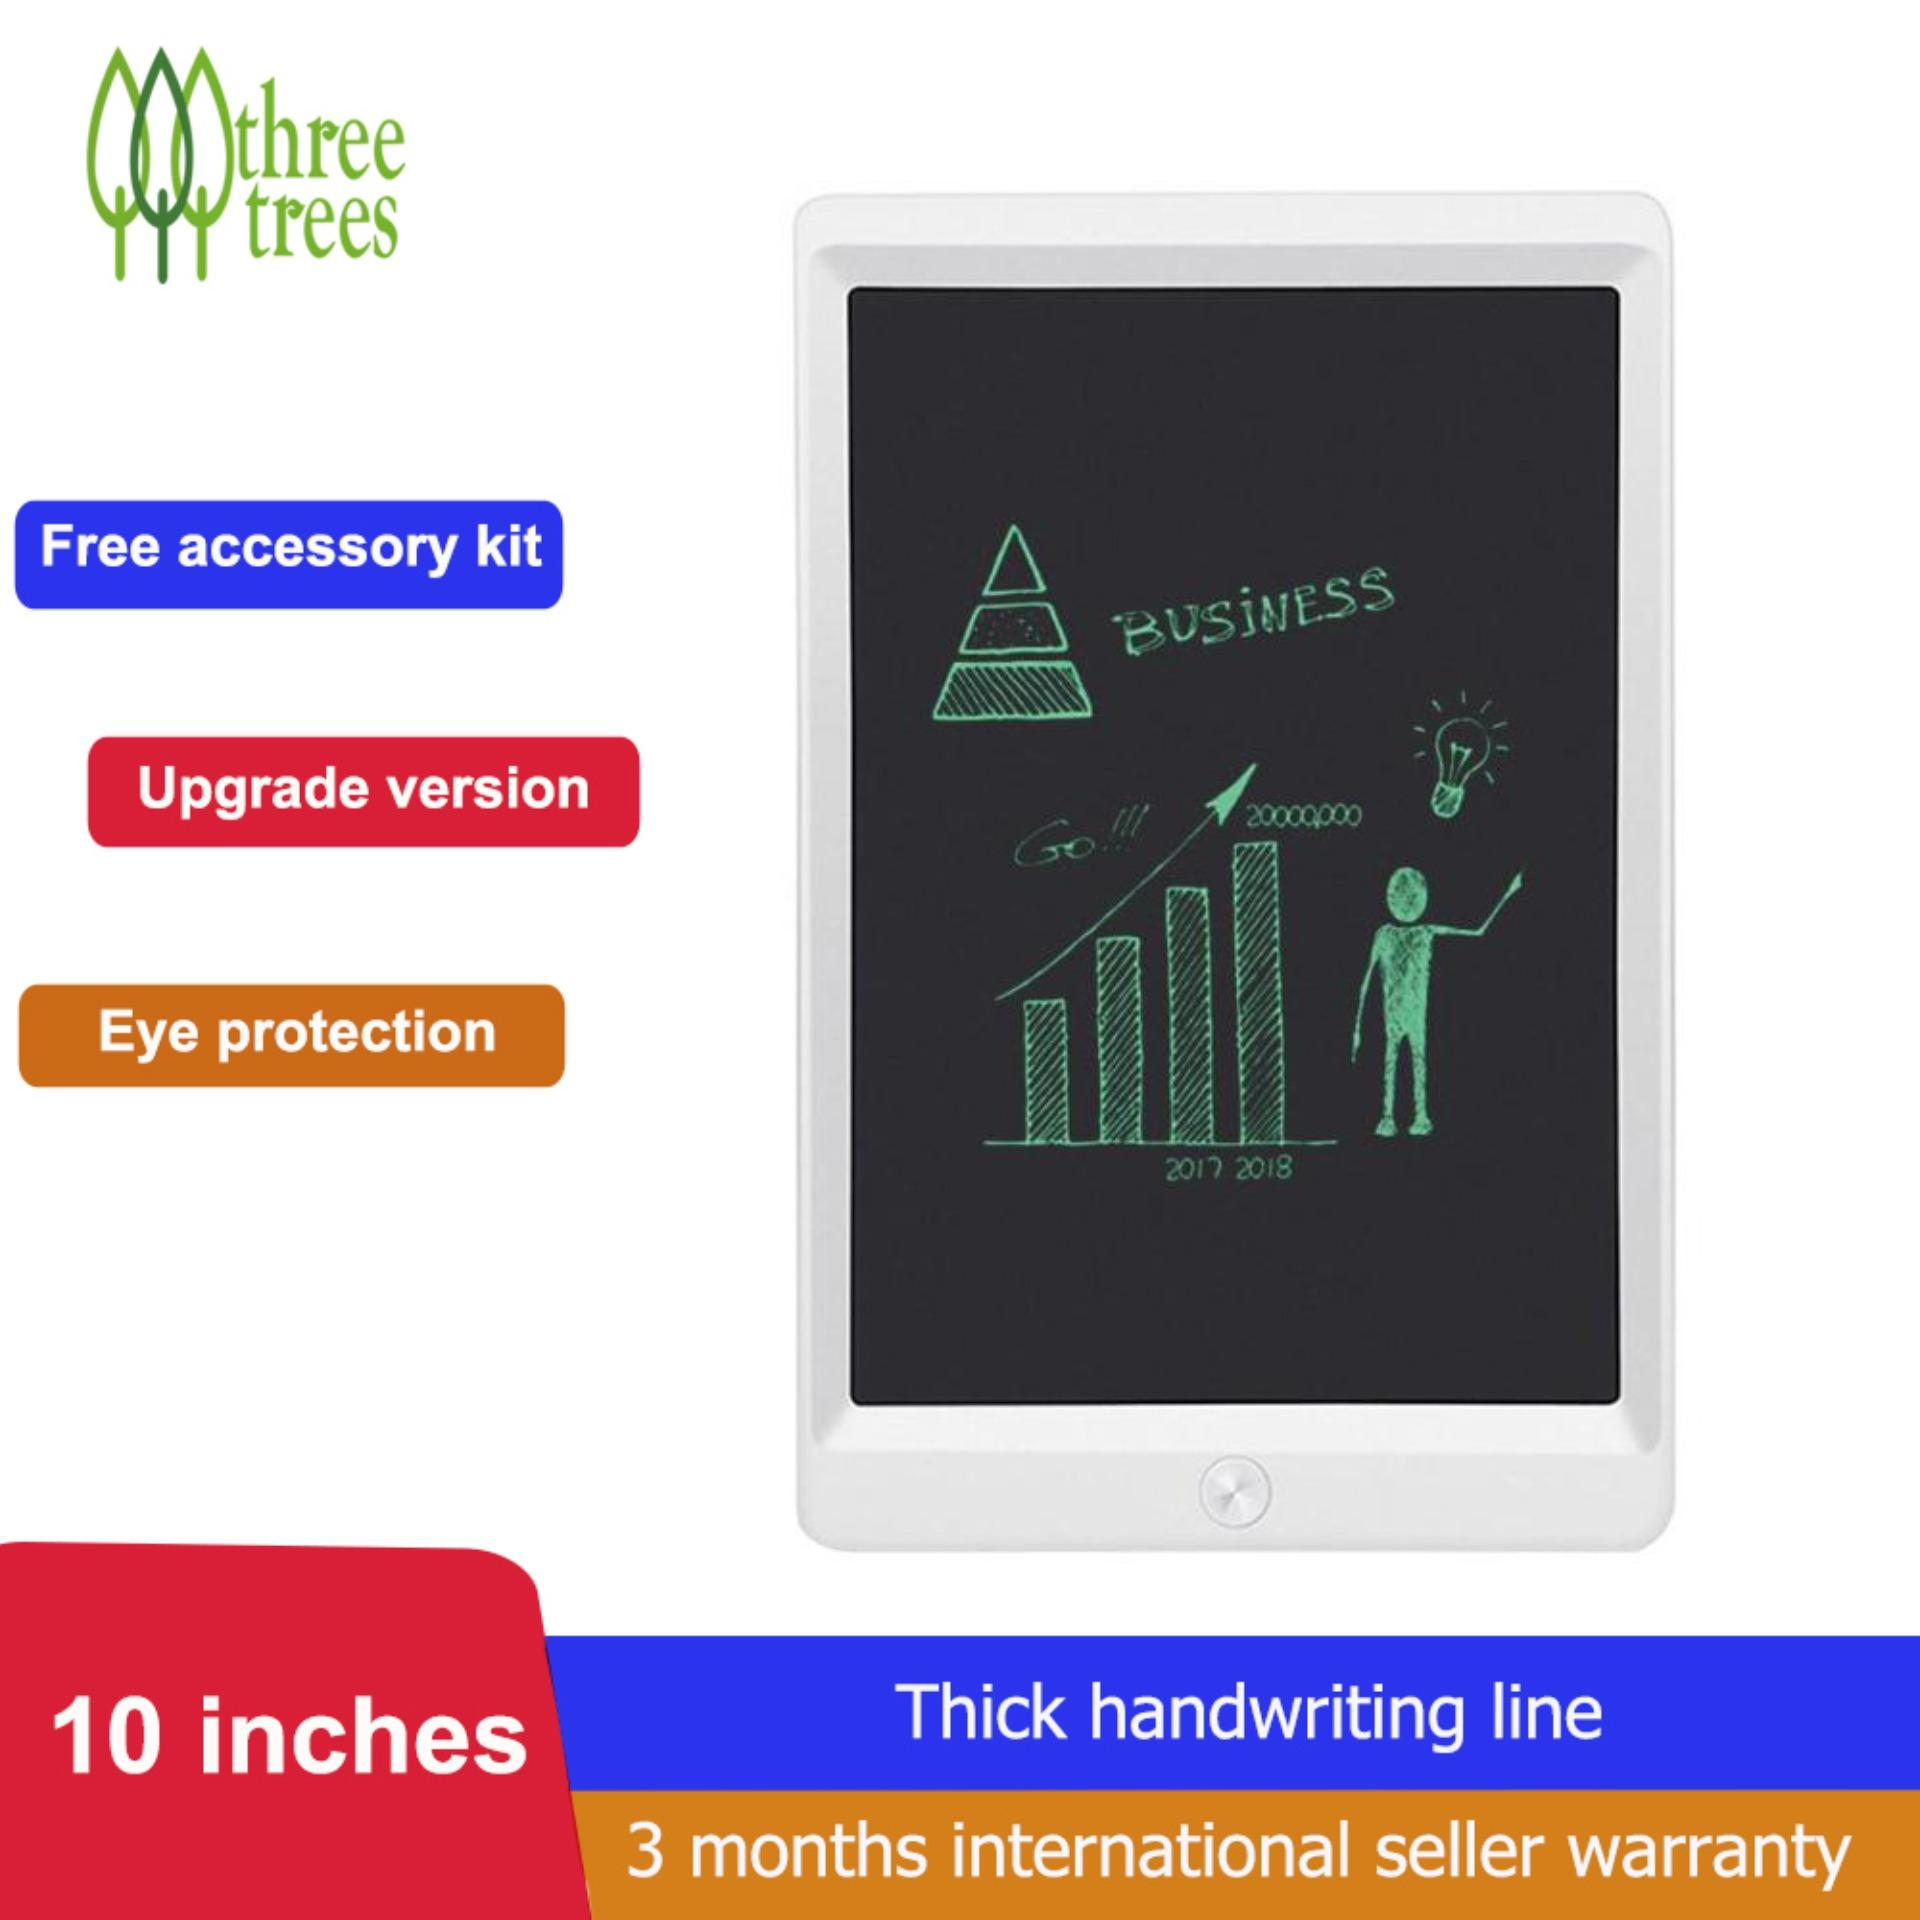 Three trees LCD Writing Tablet, 10 Inch Upgrade Version Portable Electronic Writing Drawing Board Doodle Pads for Kids and Adults, Digital Handwriting Notepad Use for School, Home and Office